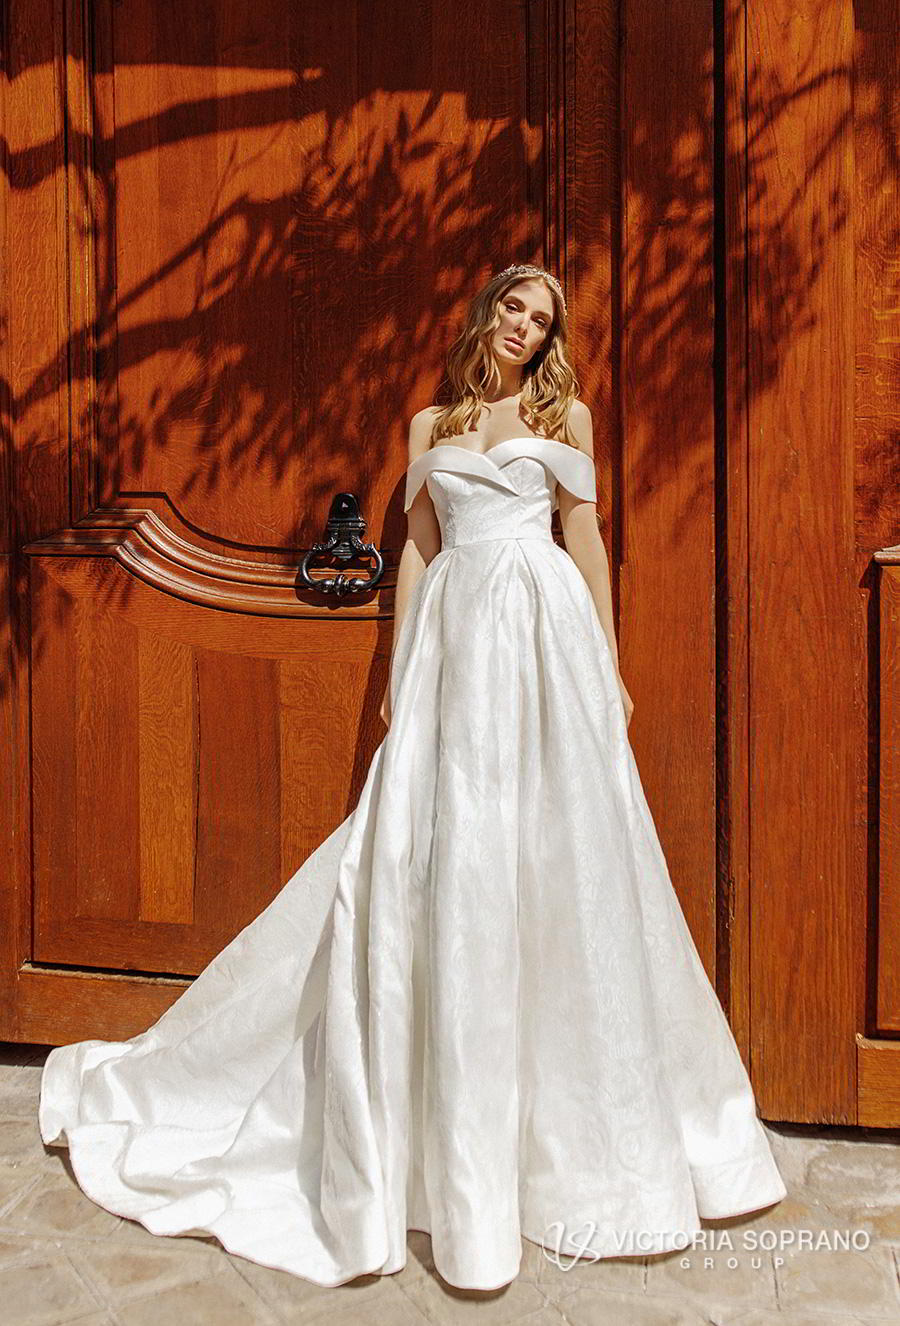 These Victoria Soprano Wedding Dresses Will Make You Swoon! — 2019 ...